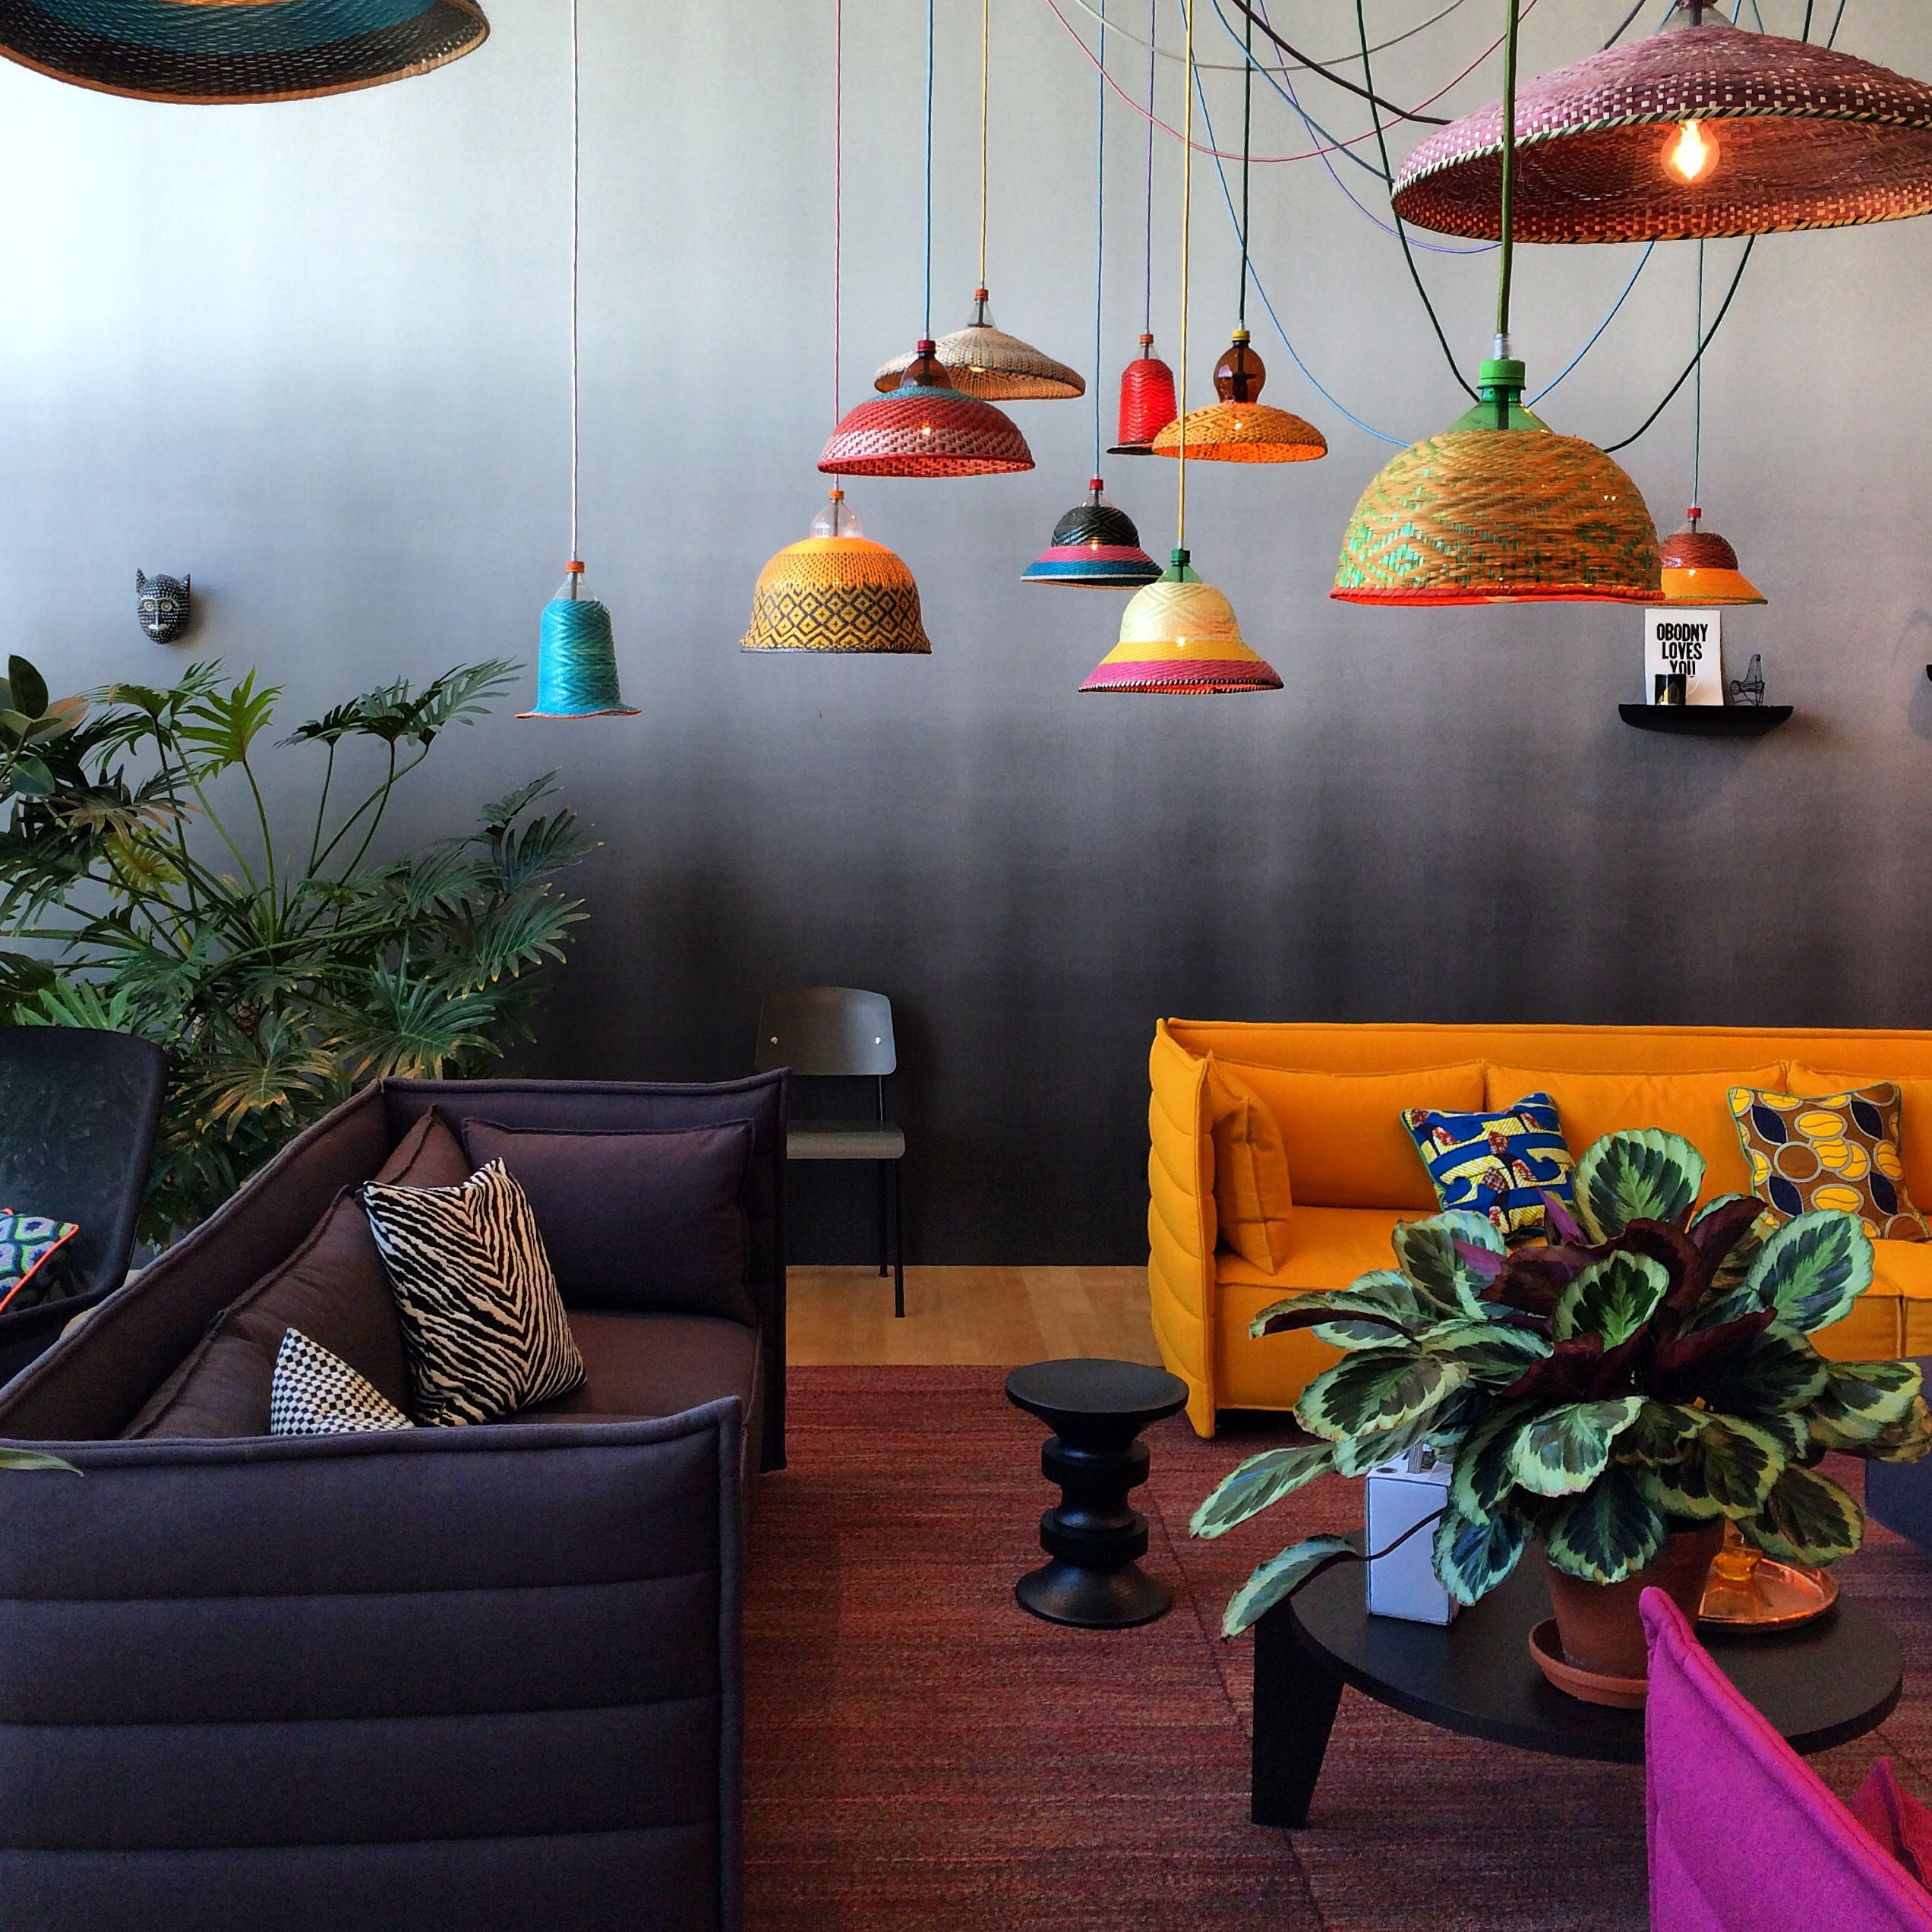 Colorful Cozy Spaces: The Colorful Lamps Really Pop Against The Ombre Wall In